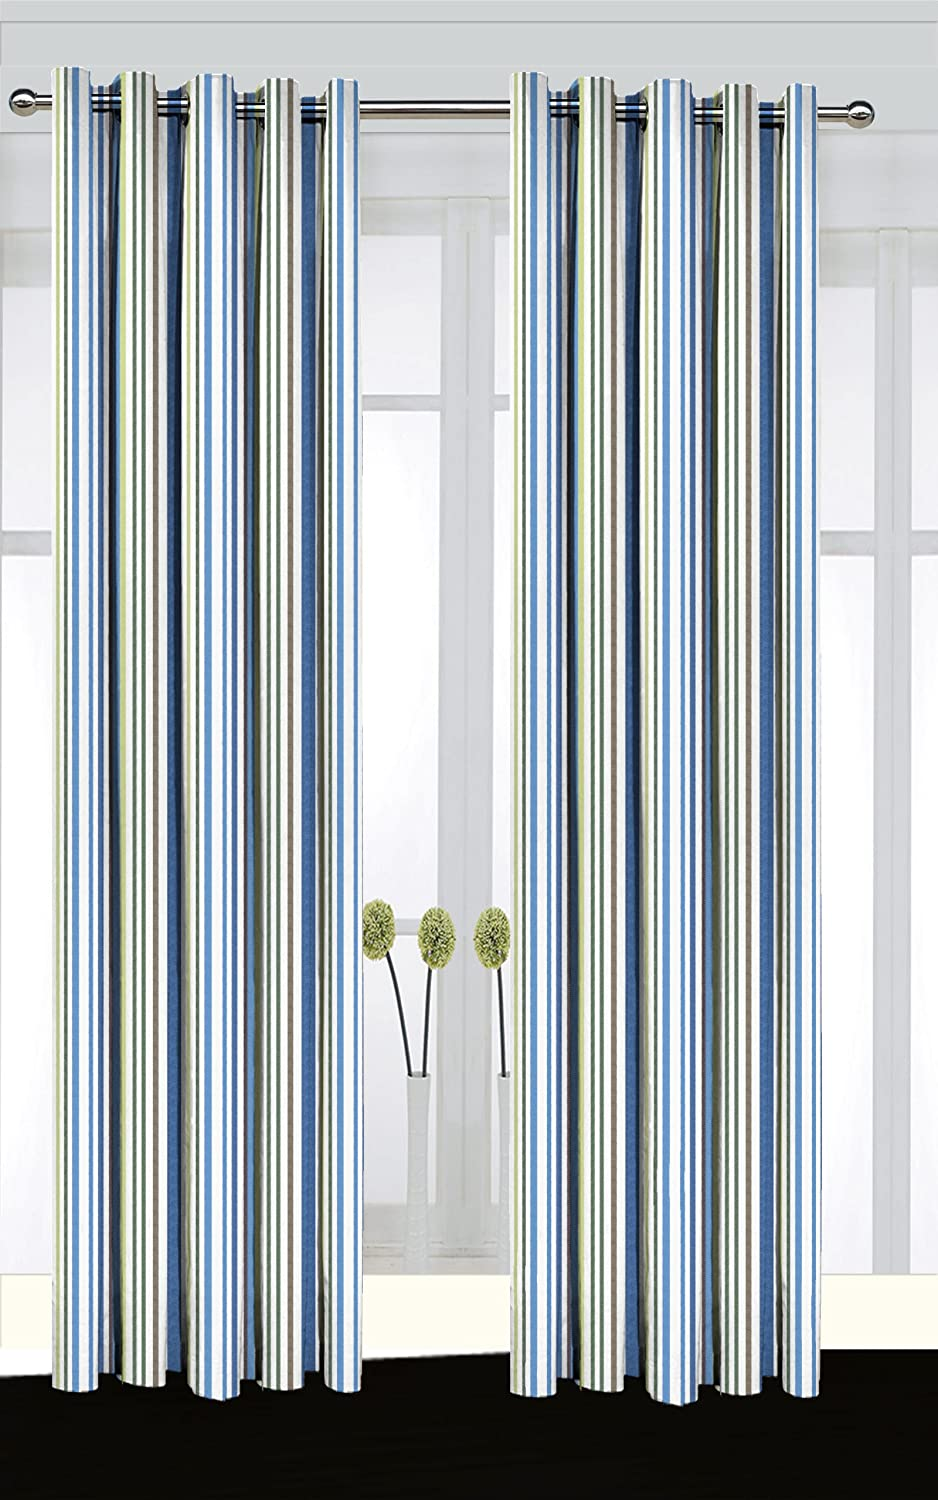 a pair of eyelet curtains stripe design with stripes in 5 different blue white yellow and grey width 117 cms46 drop 229 cms90